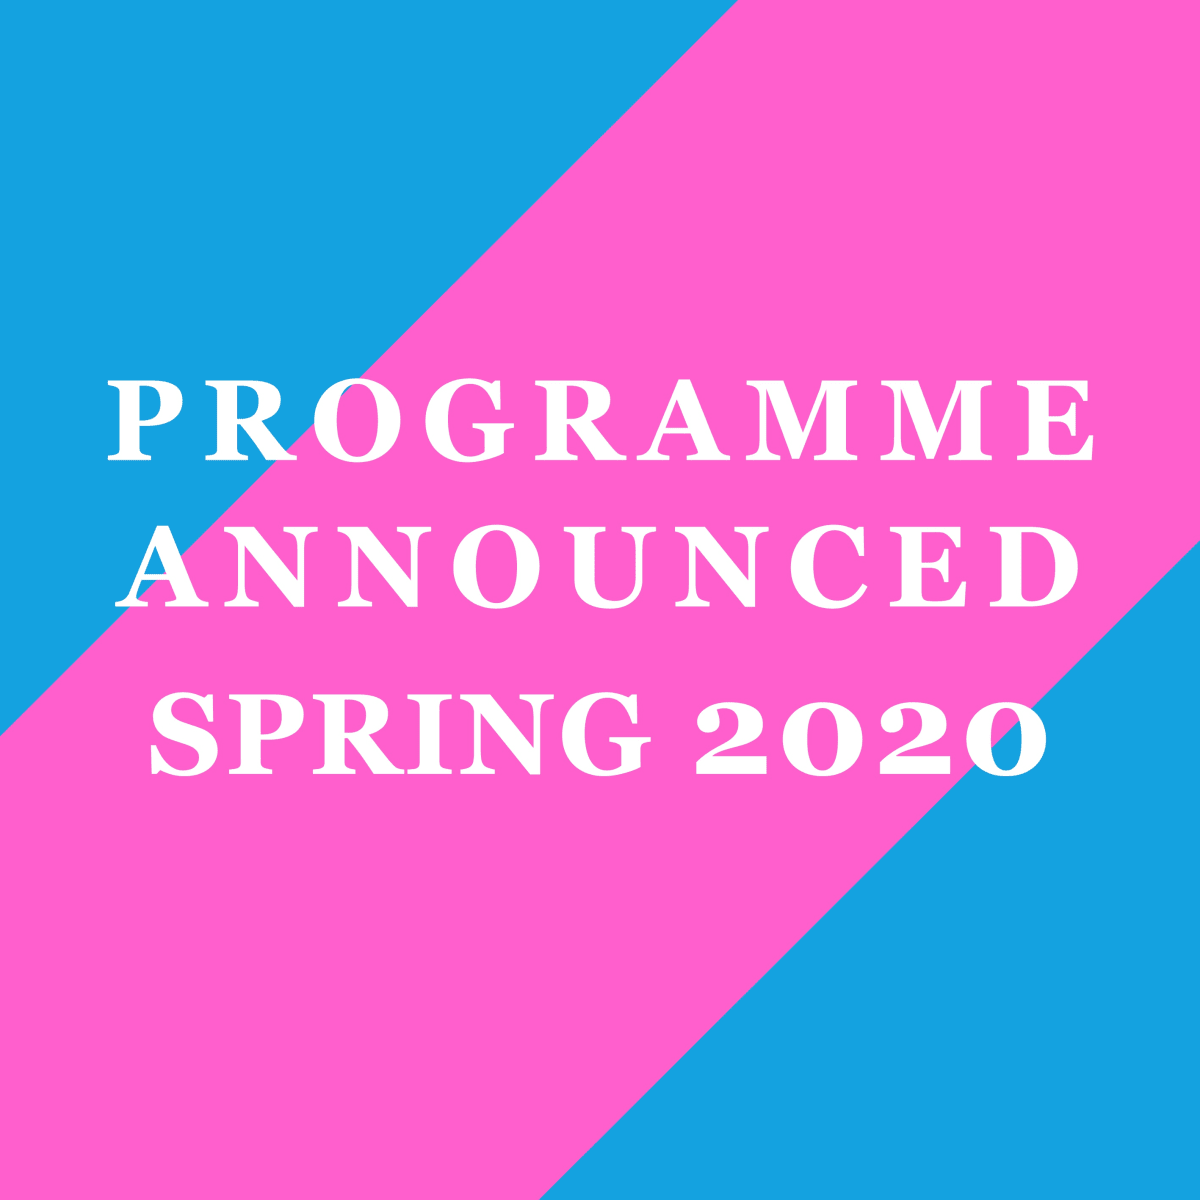 LOPF 2020 Programme, Announced Spring 2020